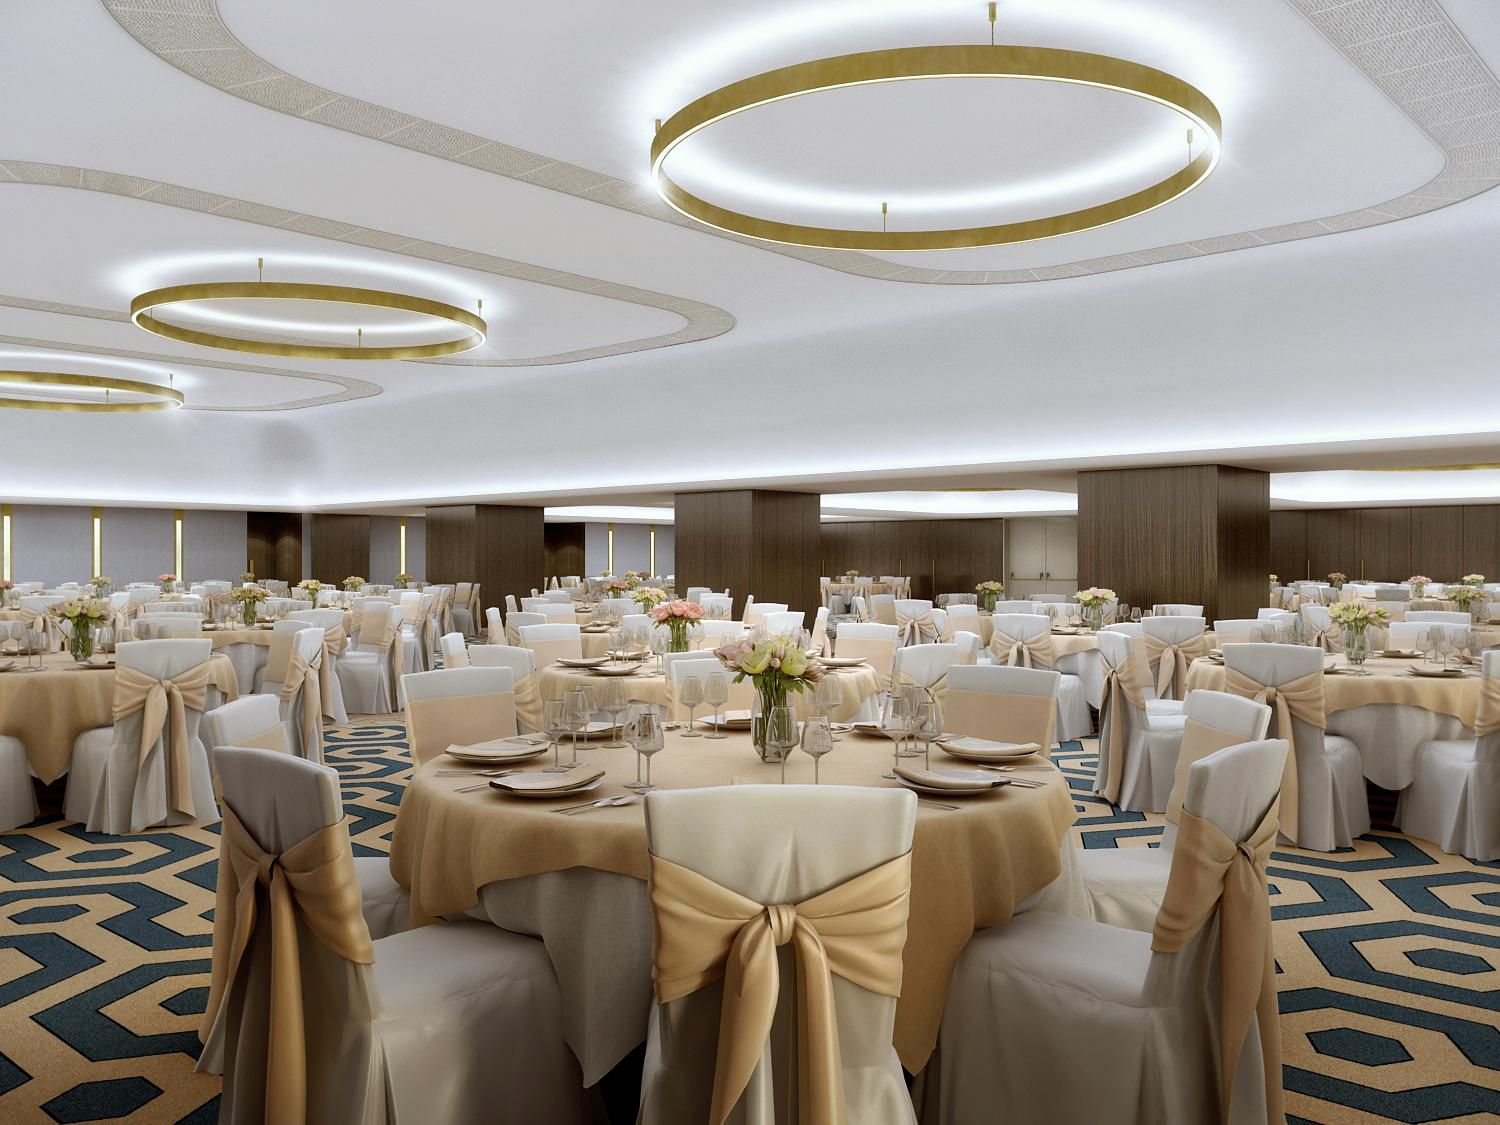 hotel crown plaza beograd mapa 4 Star Business Hotel Belgrade: Crowne Plaza Belgrade hotel crown plaza beograd mapa